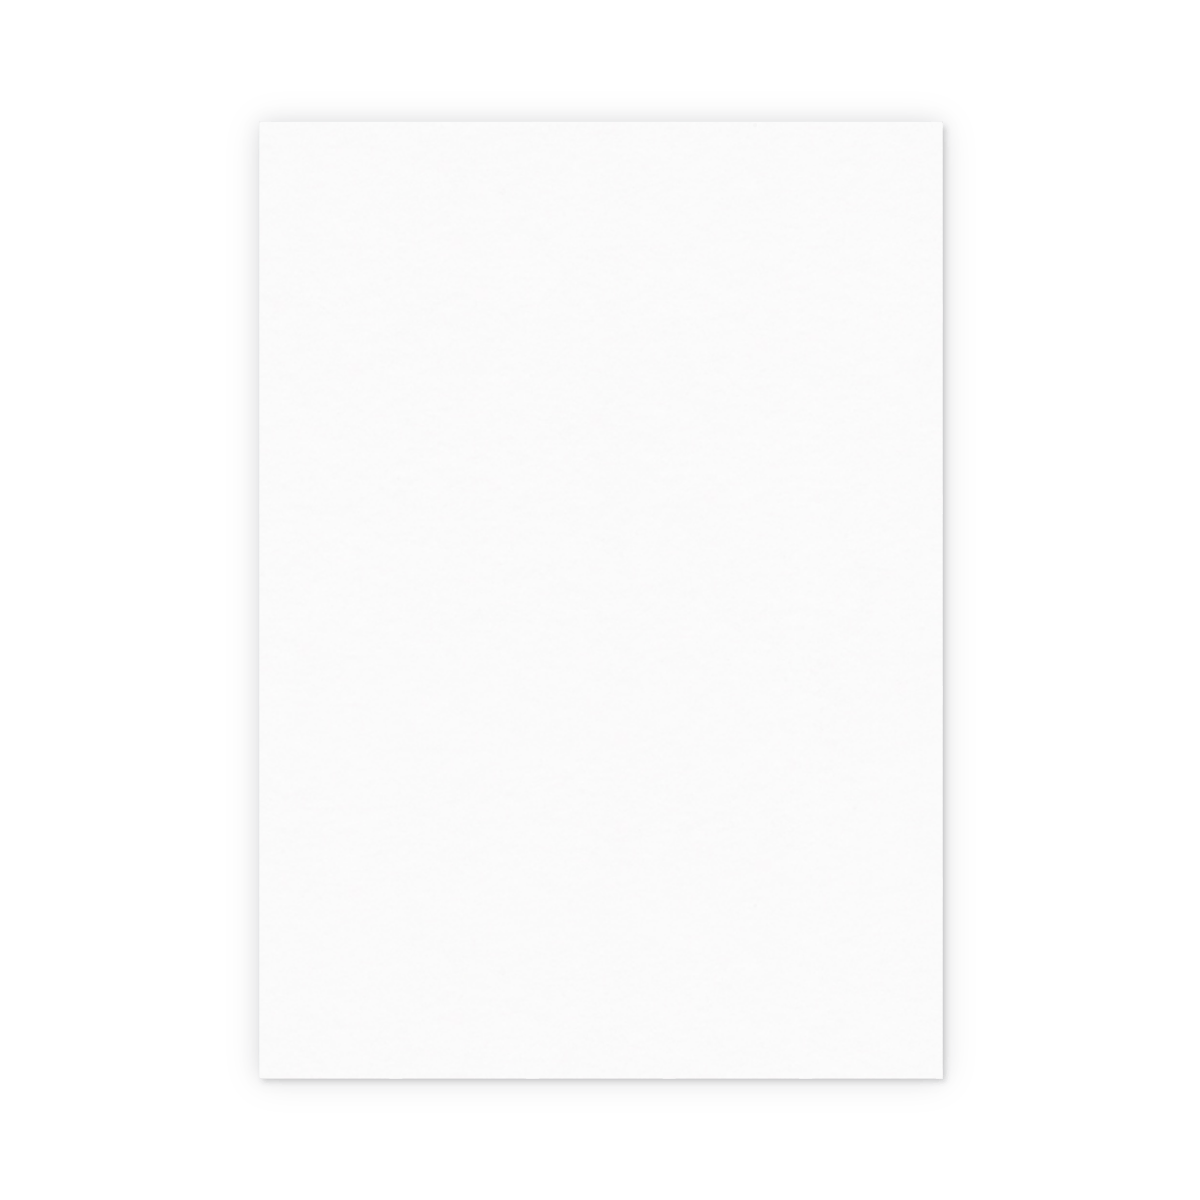 Https%3a%2f%2fwww.papier.com%2fproduct image%2f69324%2f4%2fcalligraphy menu 16372 back 1552910266.png?ixlib=rb 1.1